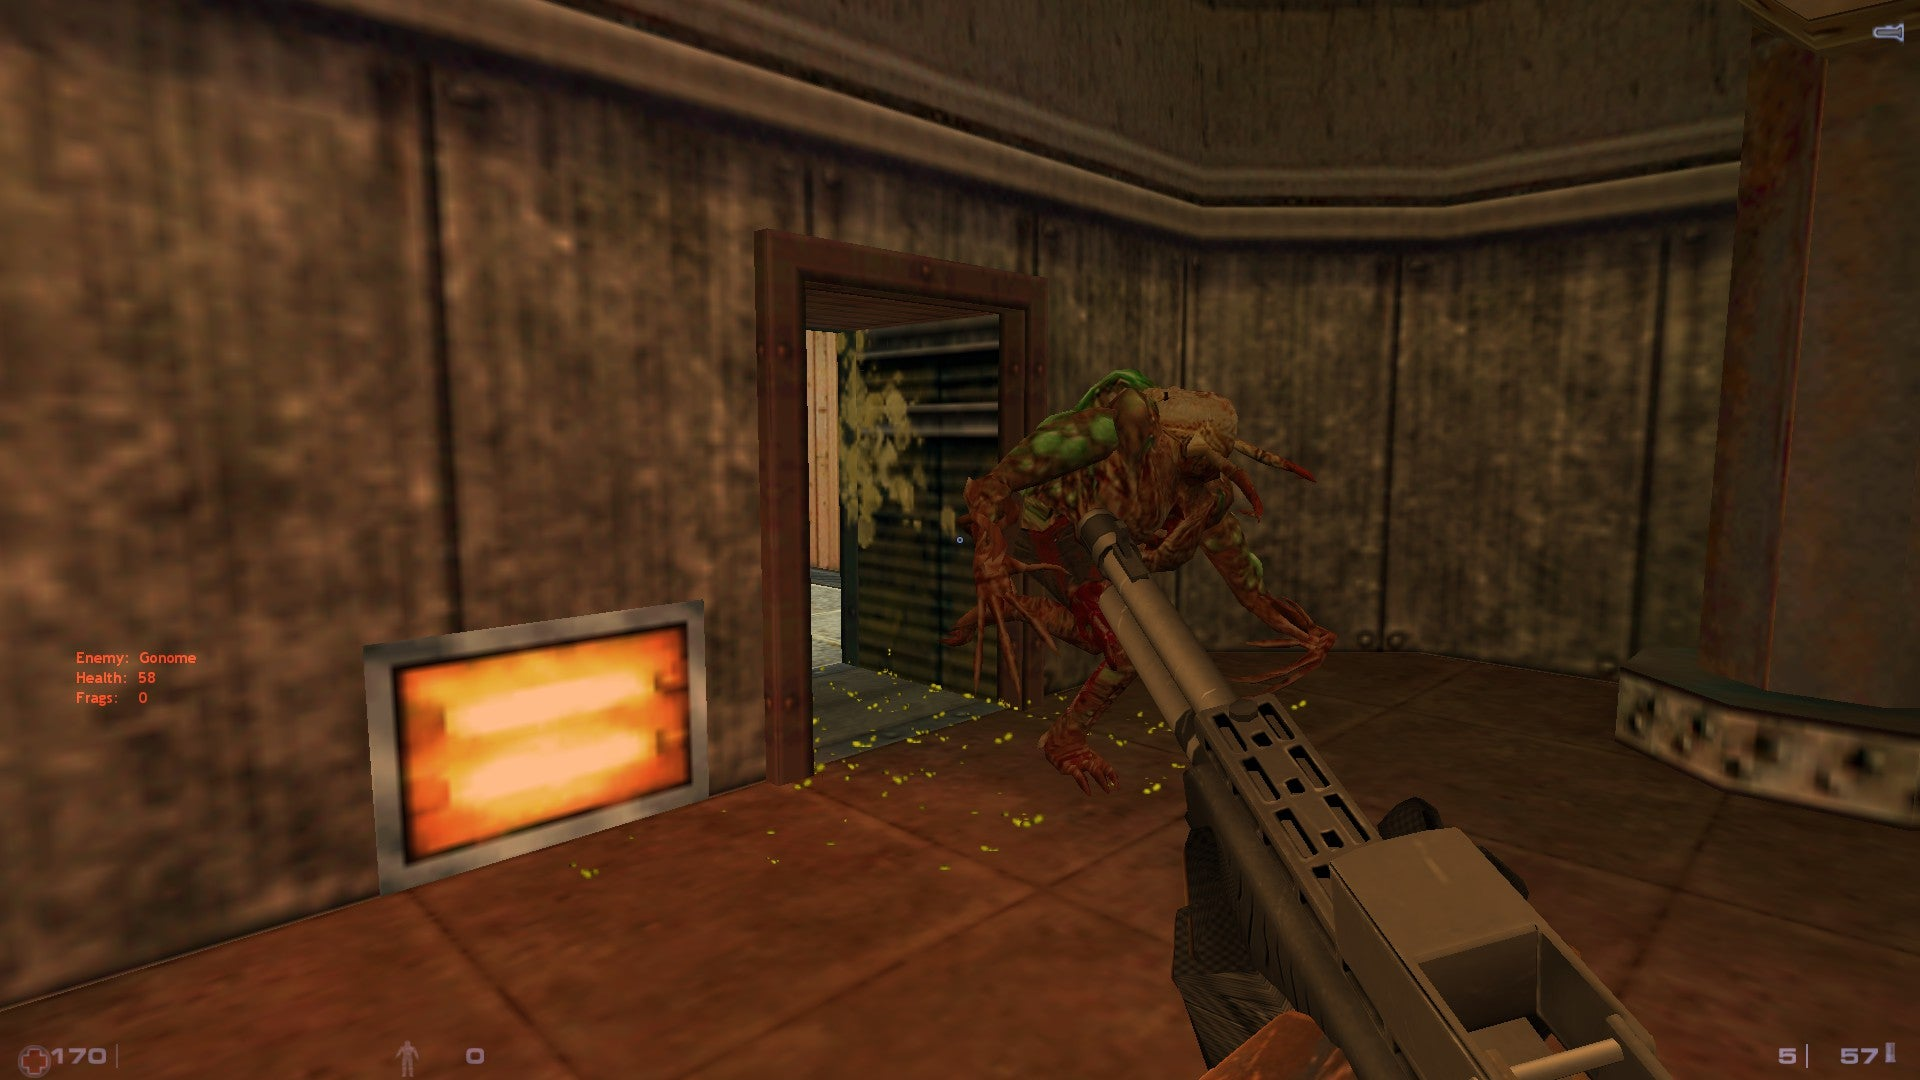 The People Who Have Spent 17 Years Perfecting Co-op Half-Life